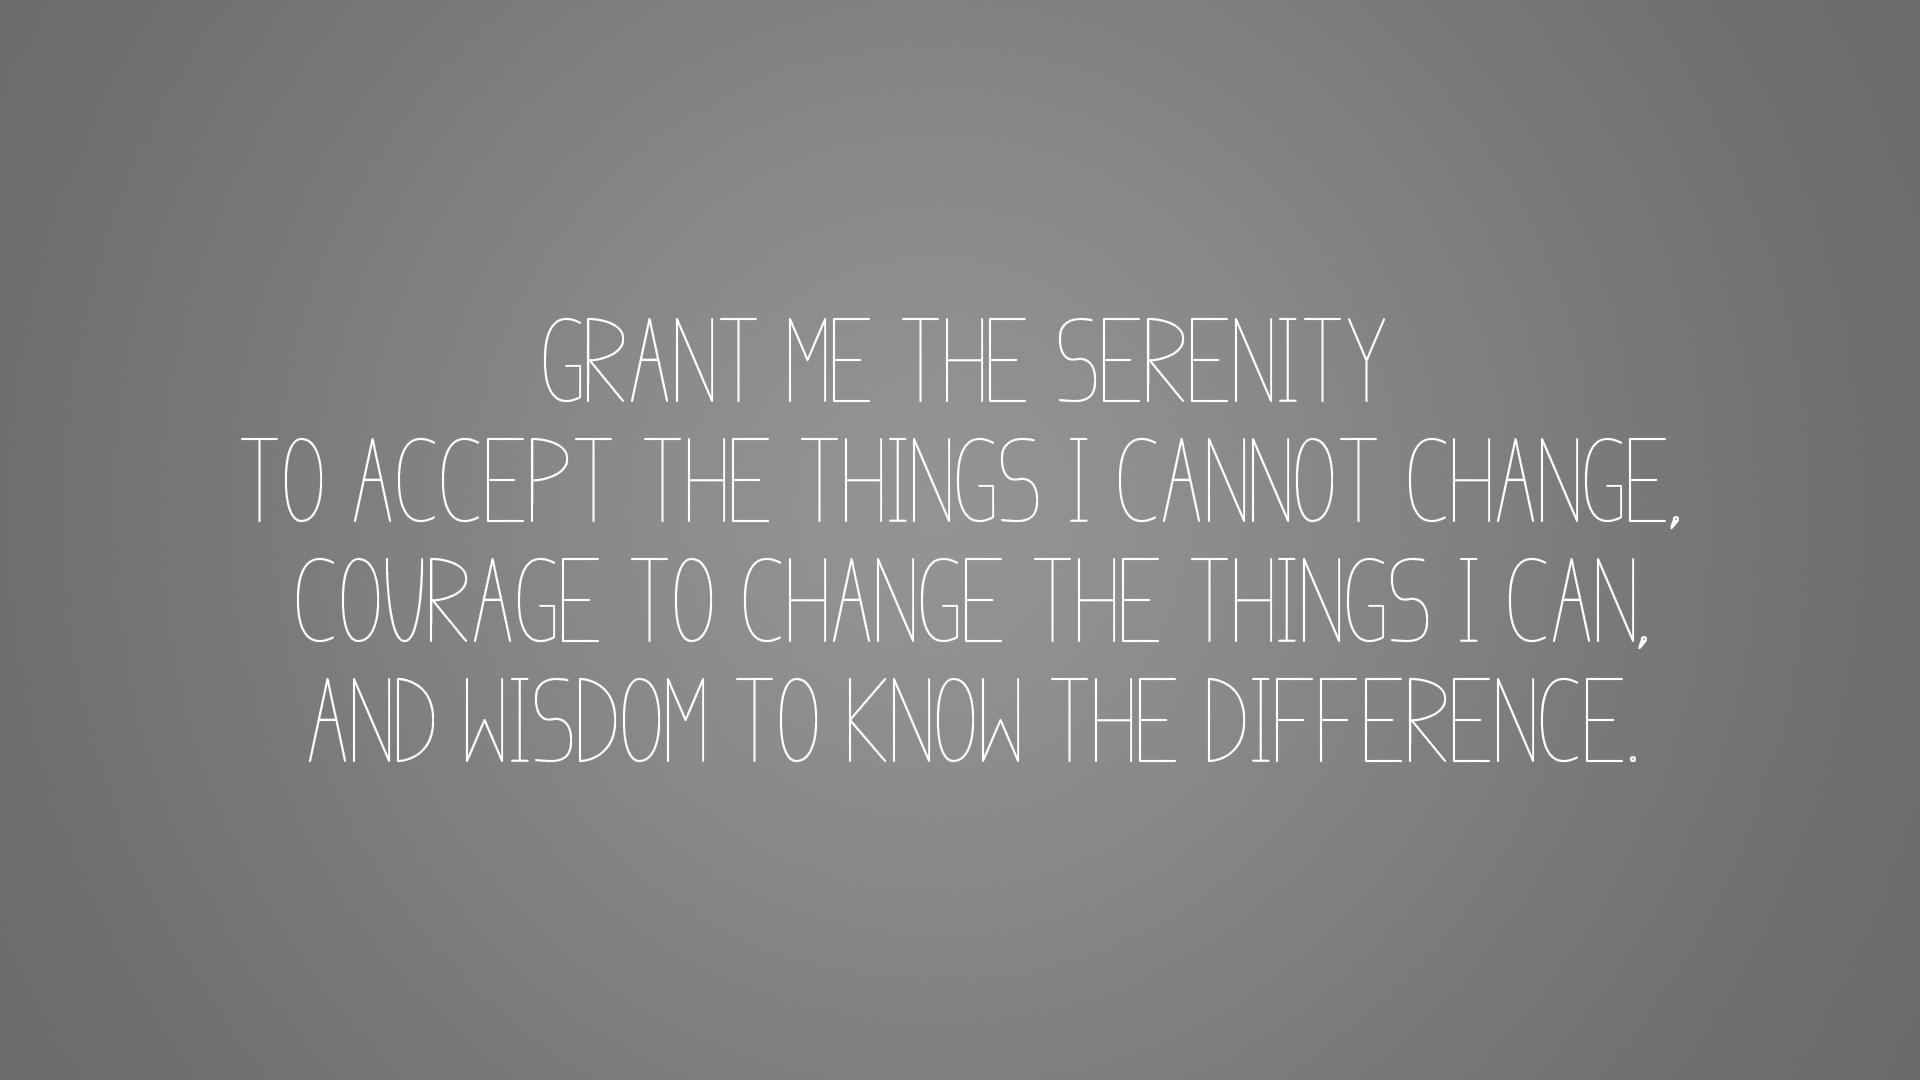 Athiest Quotes Wallpapers Hd Serenity Prayer Wallpaper Screensaver 50 Images